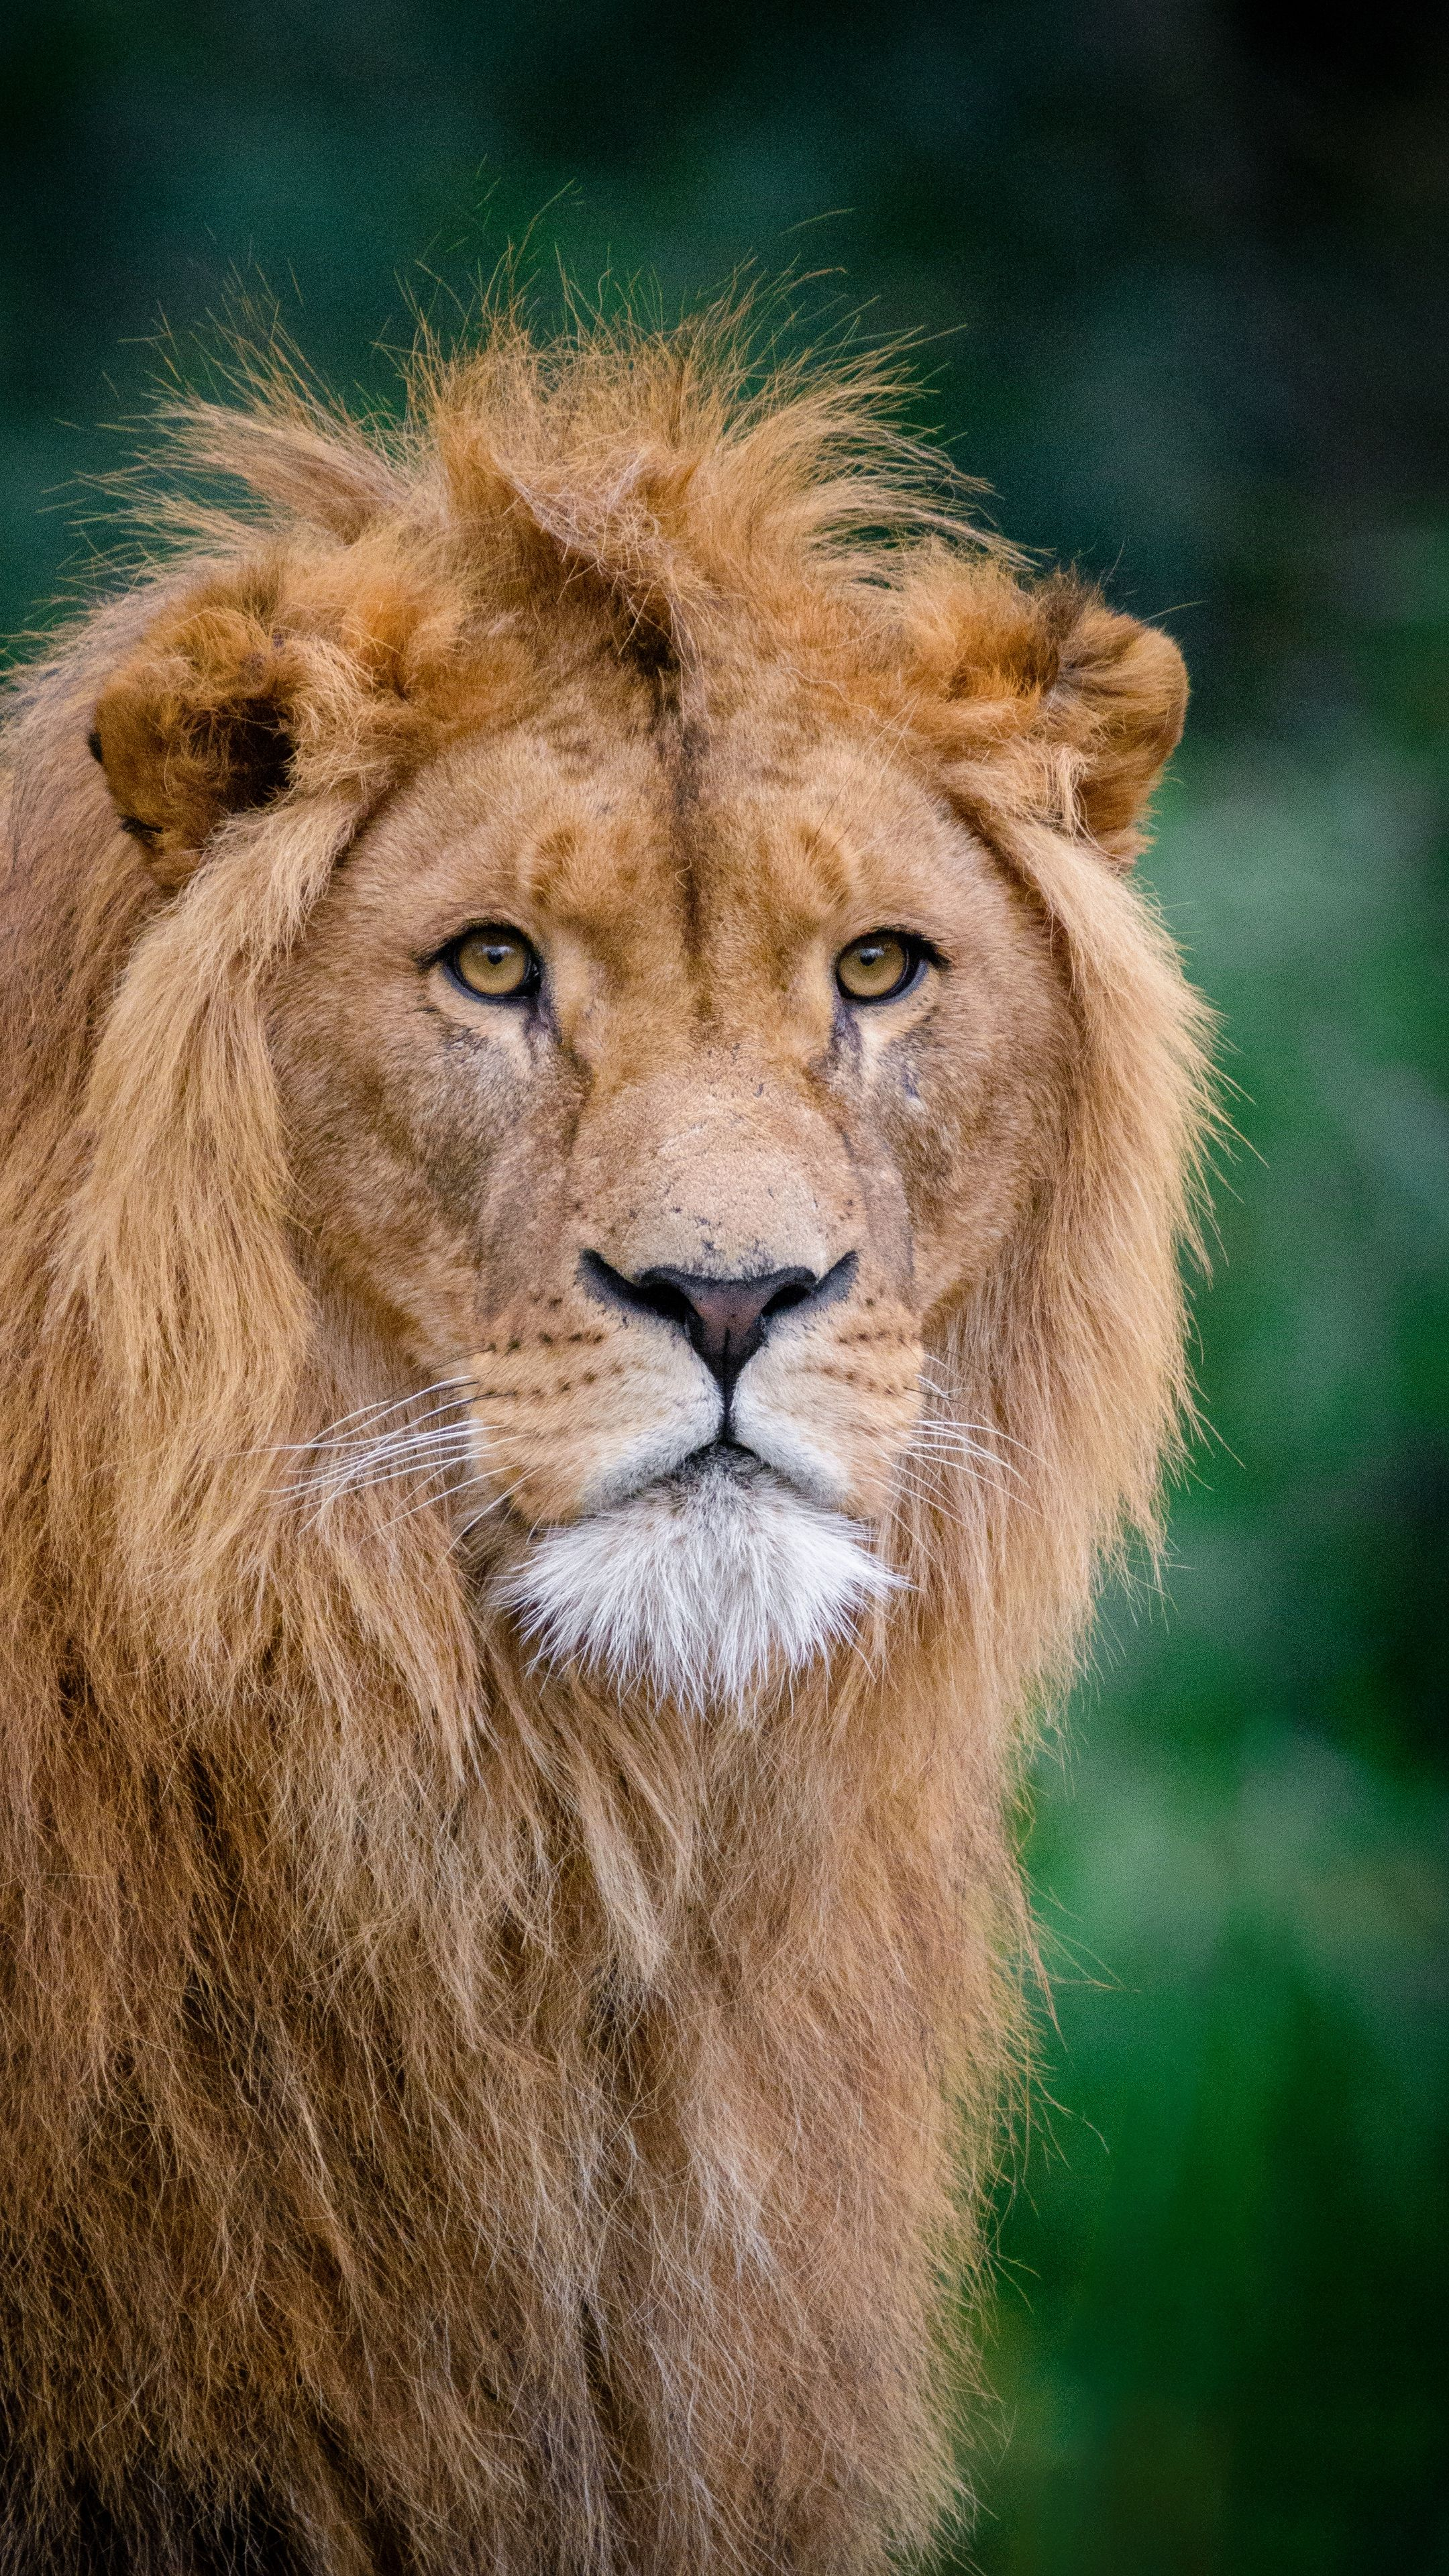 Animals Lion Kingofbeasts Muzzle Wallpapers Hd 4k Background For